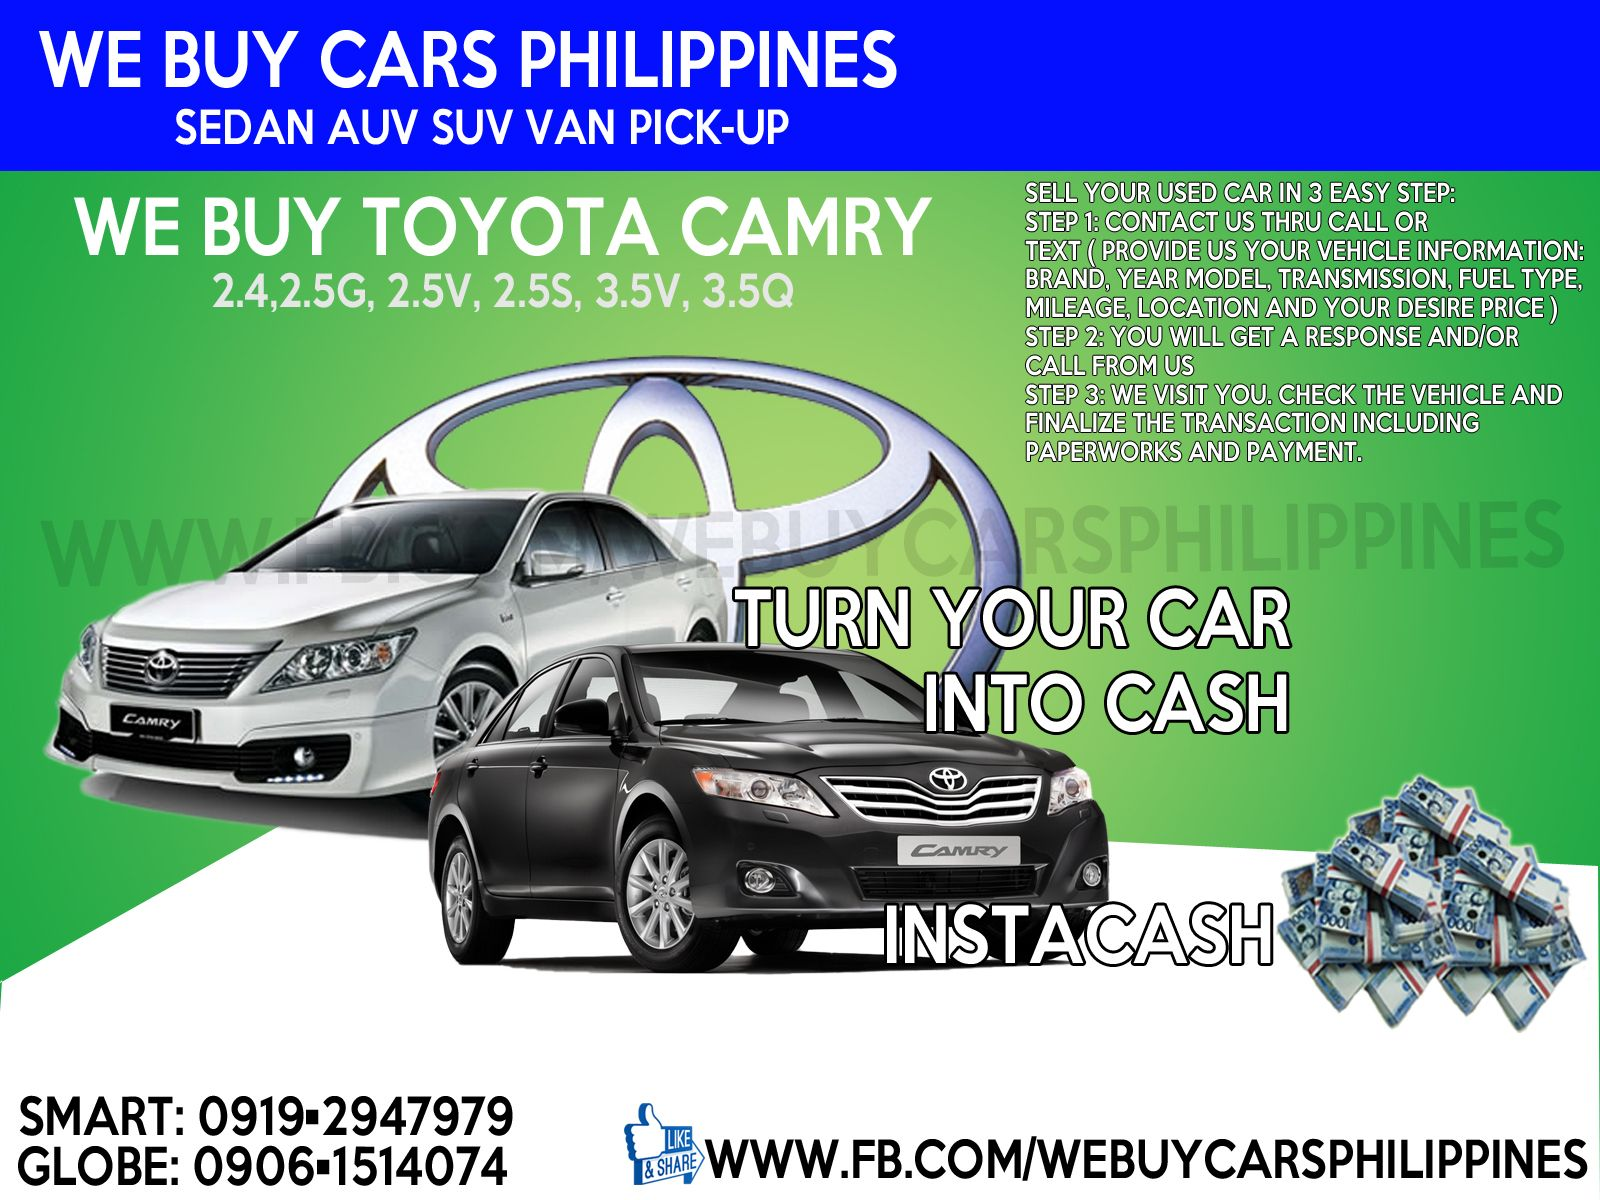 We Buy Used Toyota Camry Philippines Contact numbers